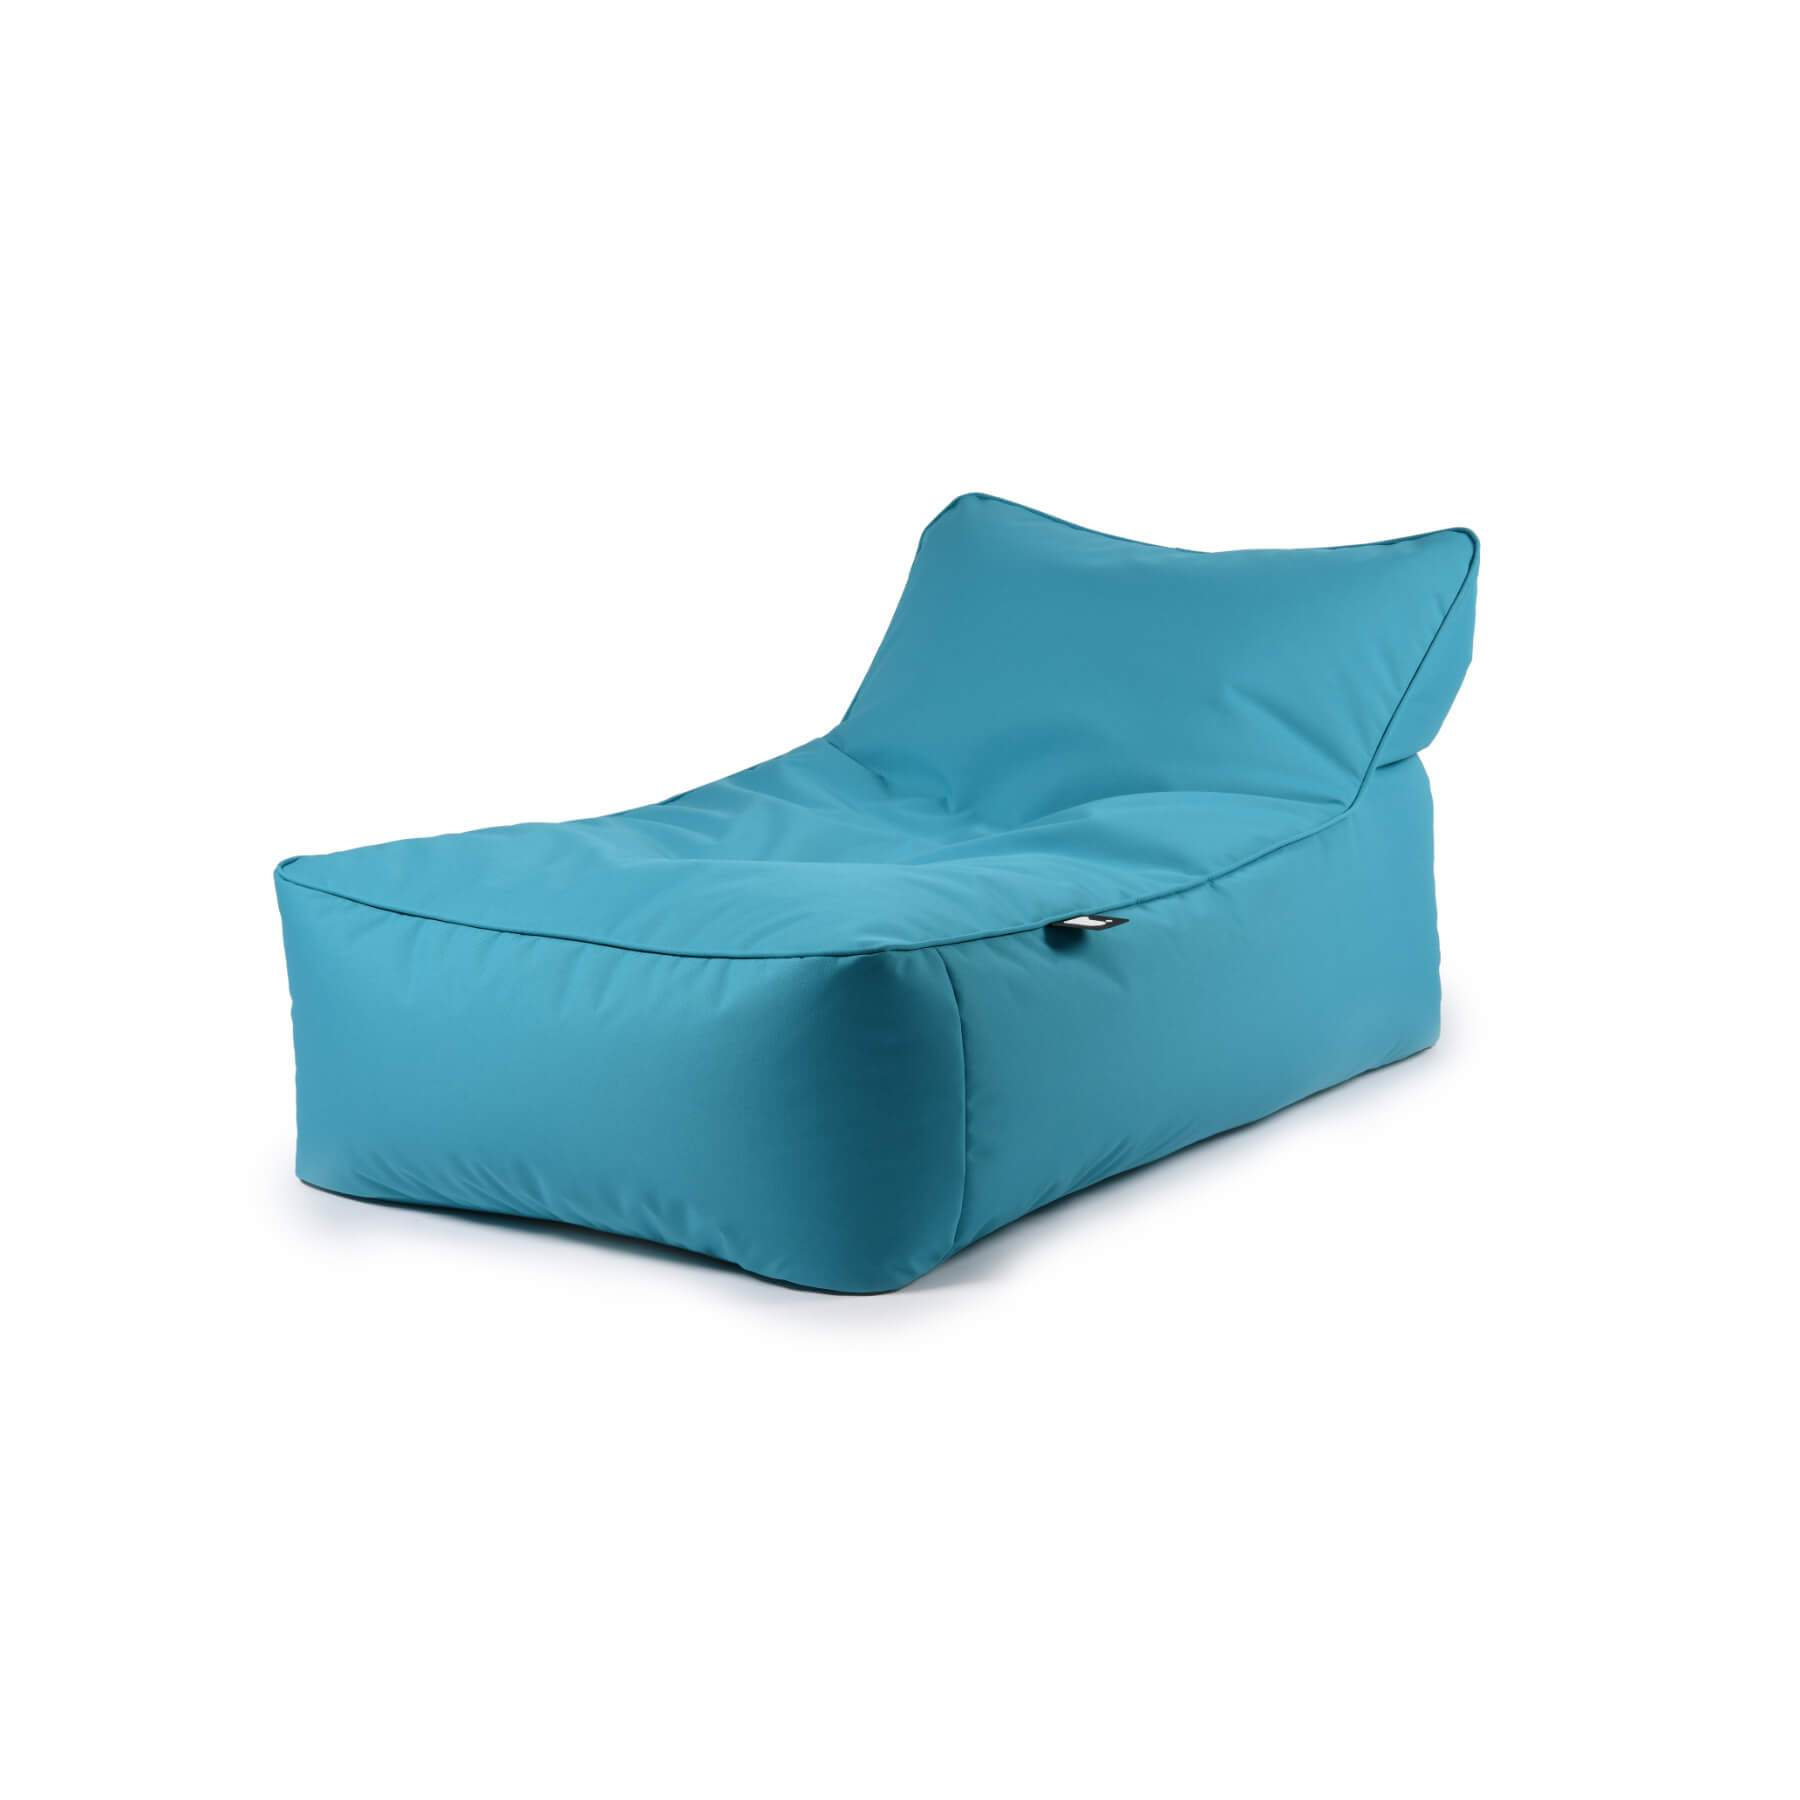 Extreme Lounging B Bed - Aqua